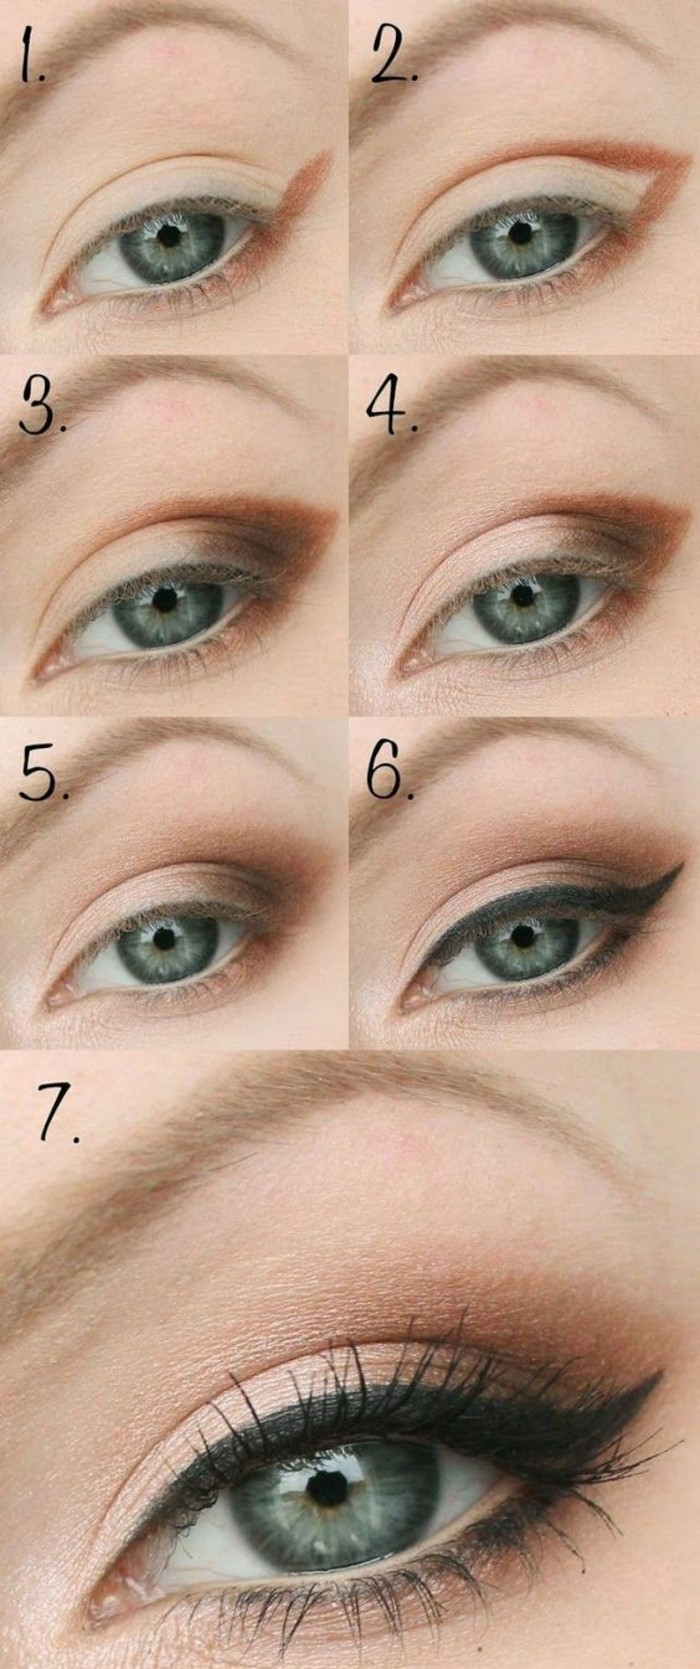 0-tuto-maquillage-yeux-verts-comment-souligner-les-yeux-verts